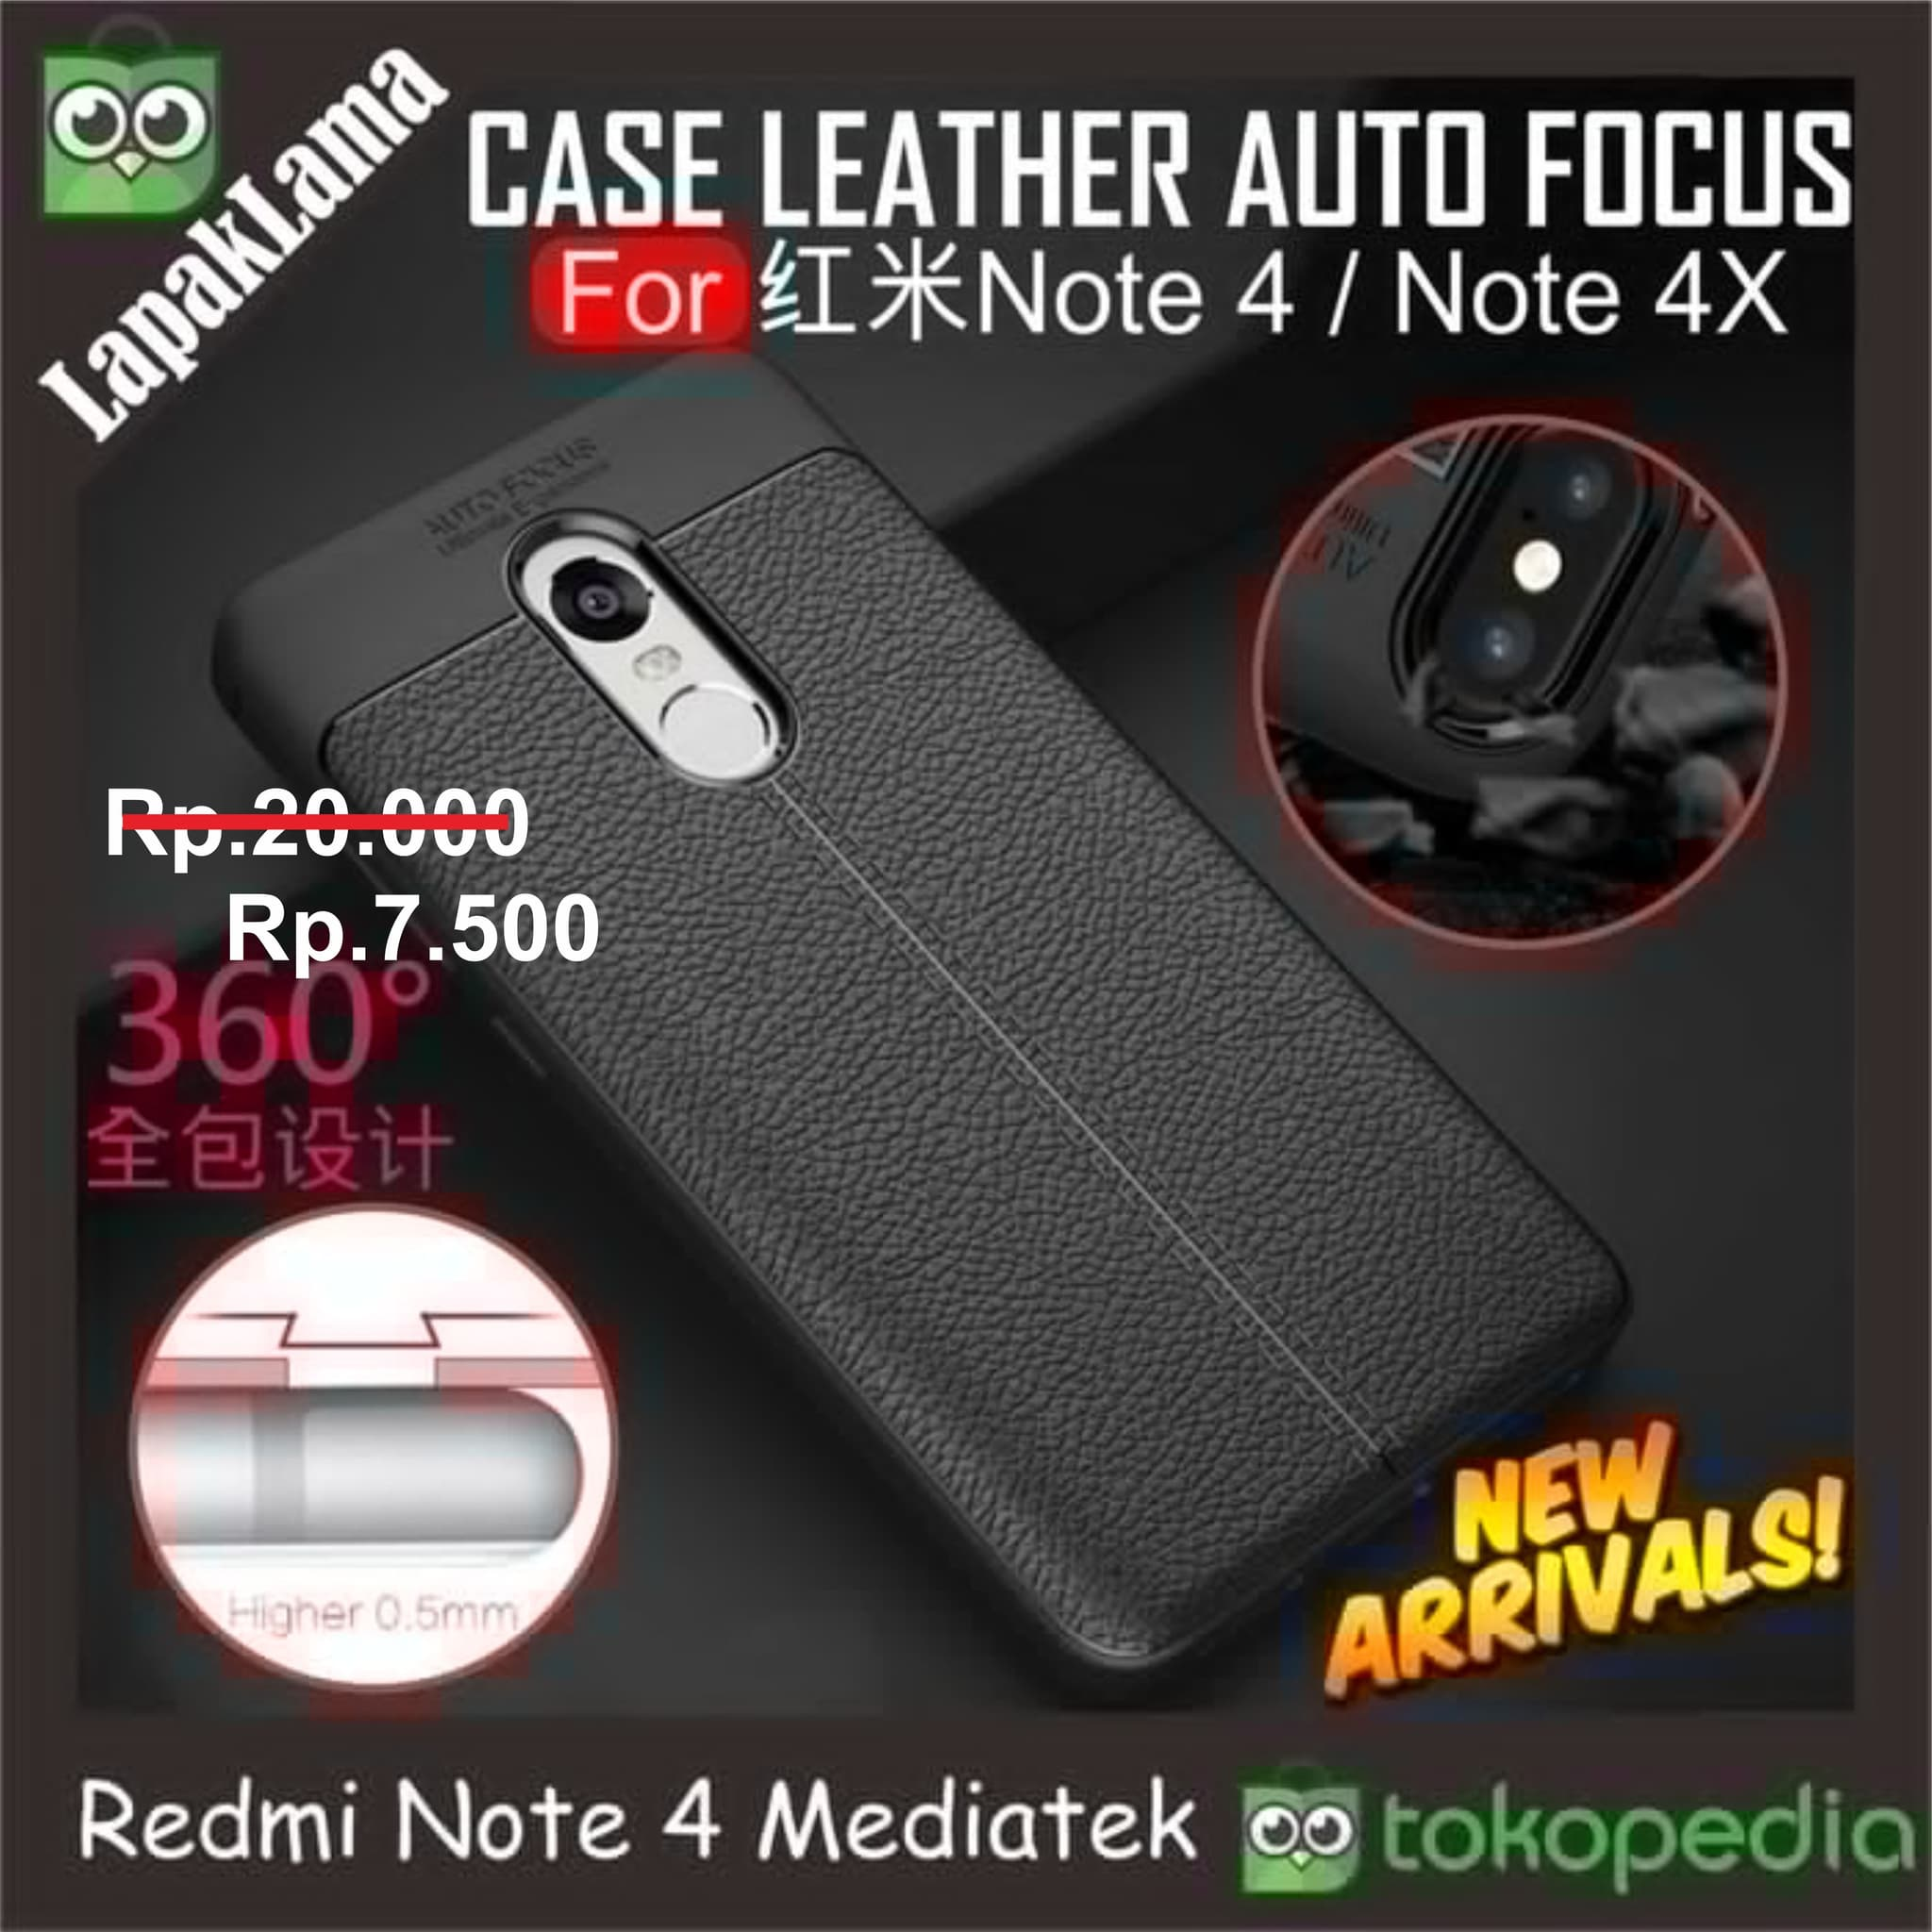 Jual Case Leather Auto Focus Original Xiaomi Redmi Note 4 Mediatek For Vivo Y81 Full Covered